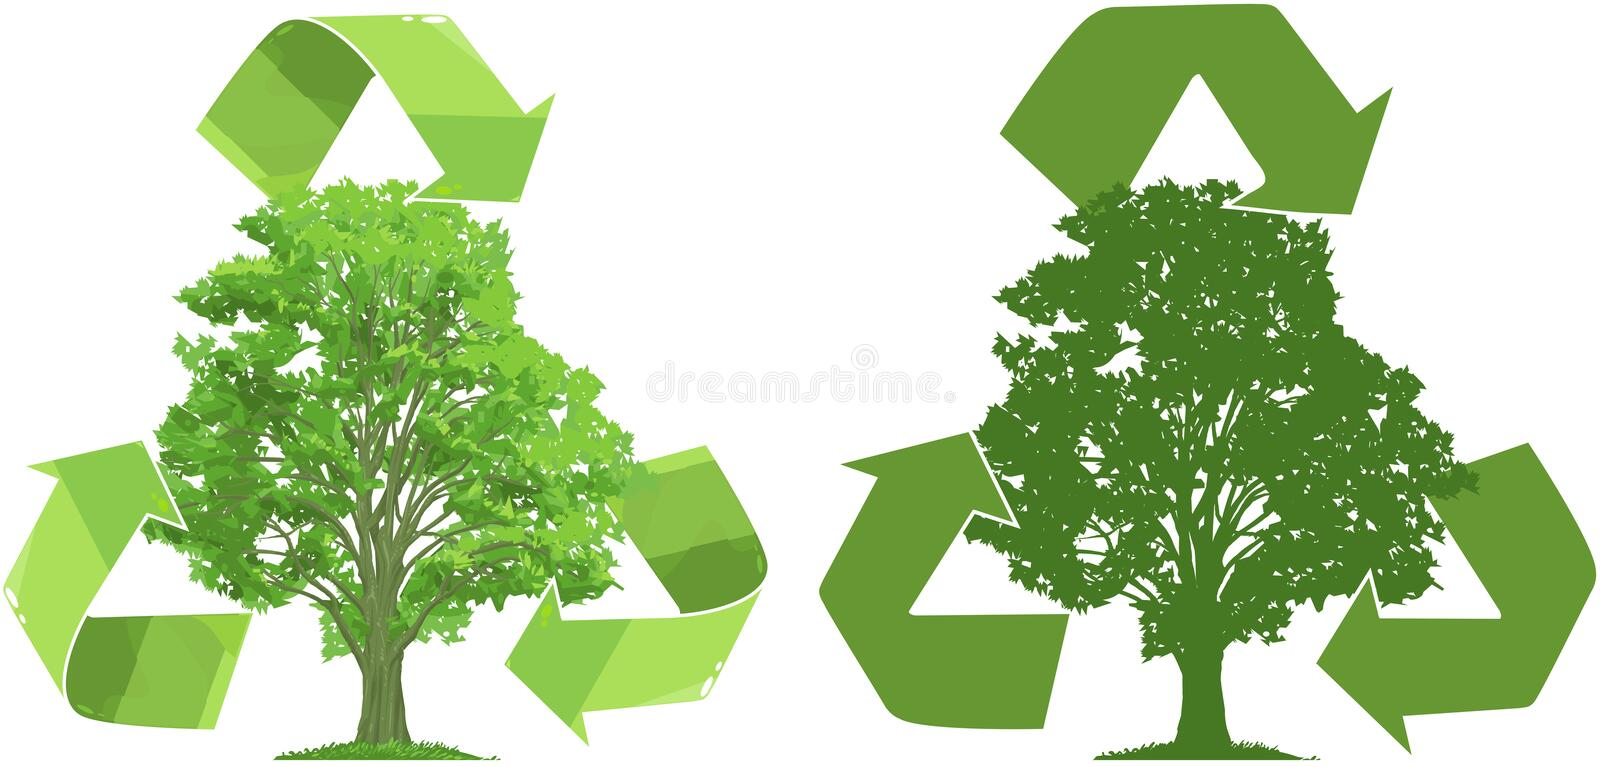 Recycle For Trees stock illustration